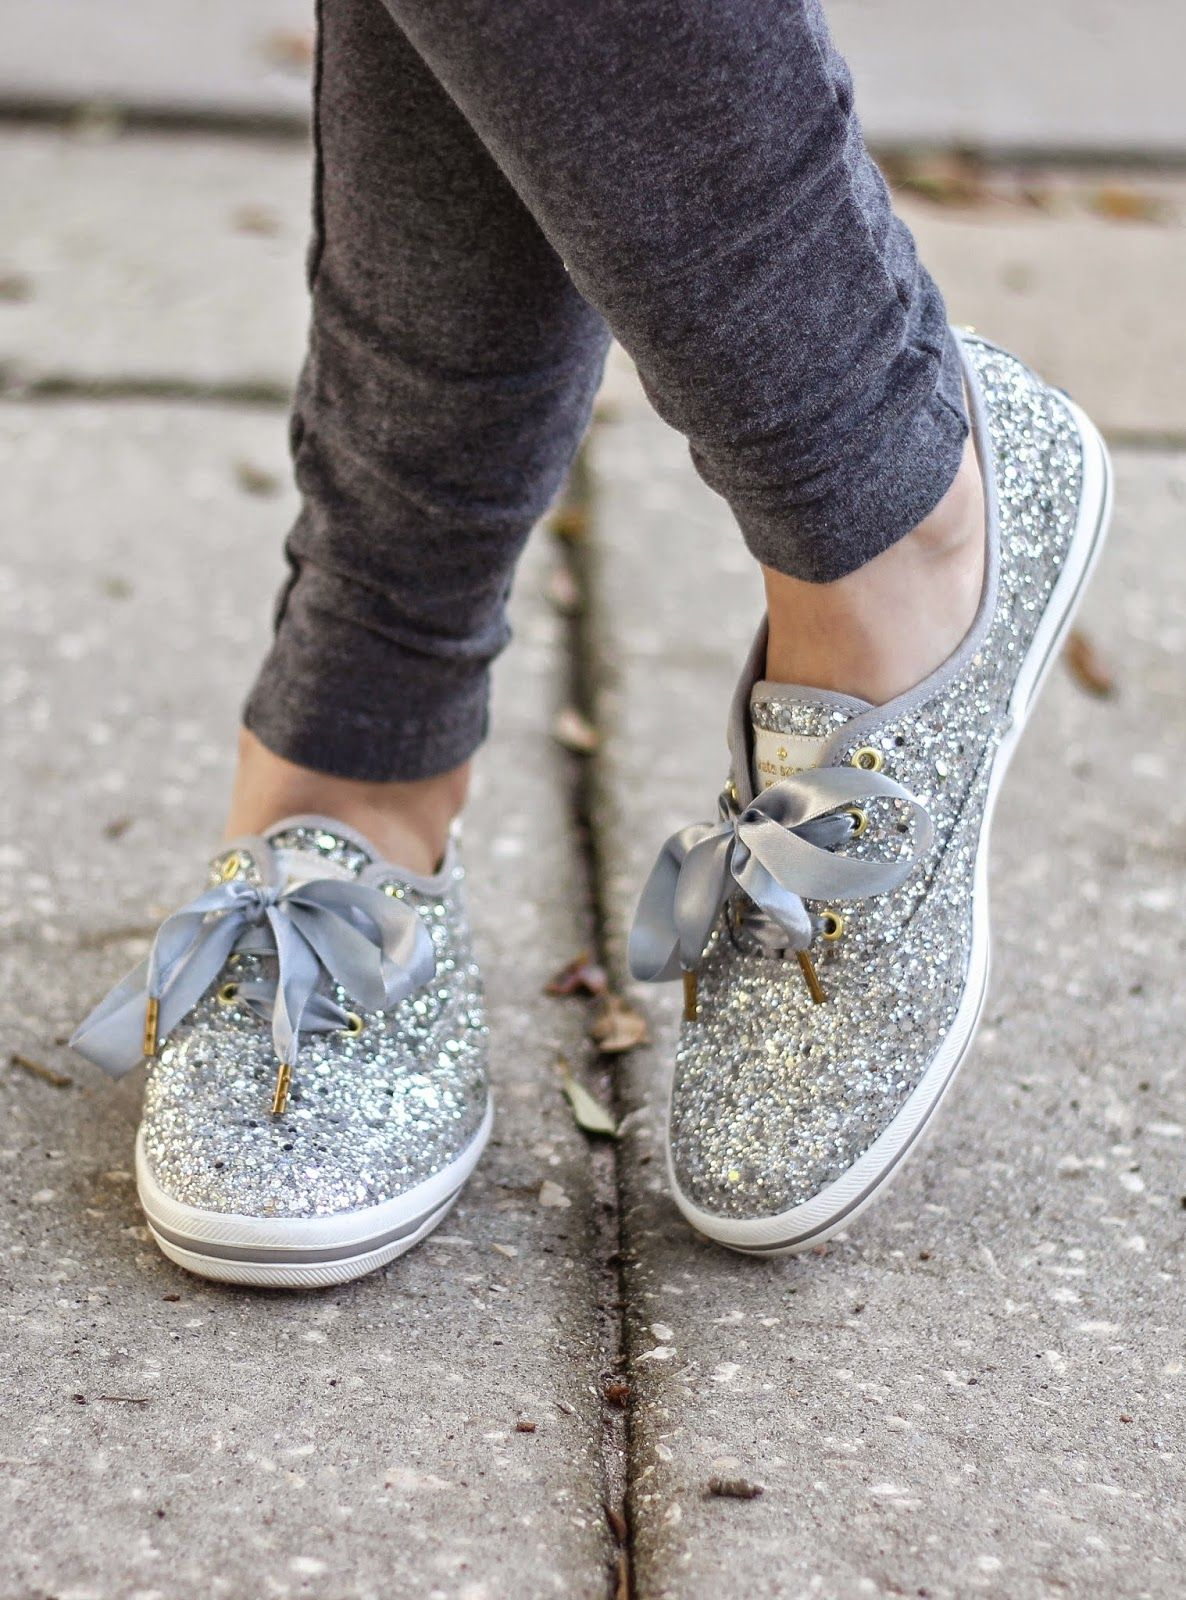 52f6984fa9fb1 Kelly Elizabeth Style  Skinny Sweats and Glitter Shoes - skinny sweatpants   Target  silver glitter shoes  Kate Spade for Keds